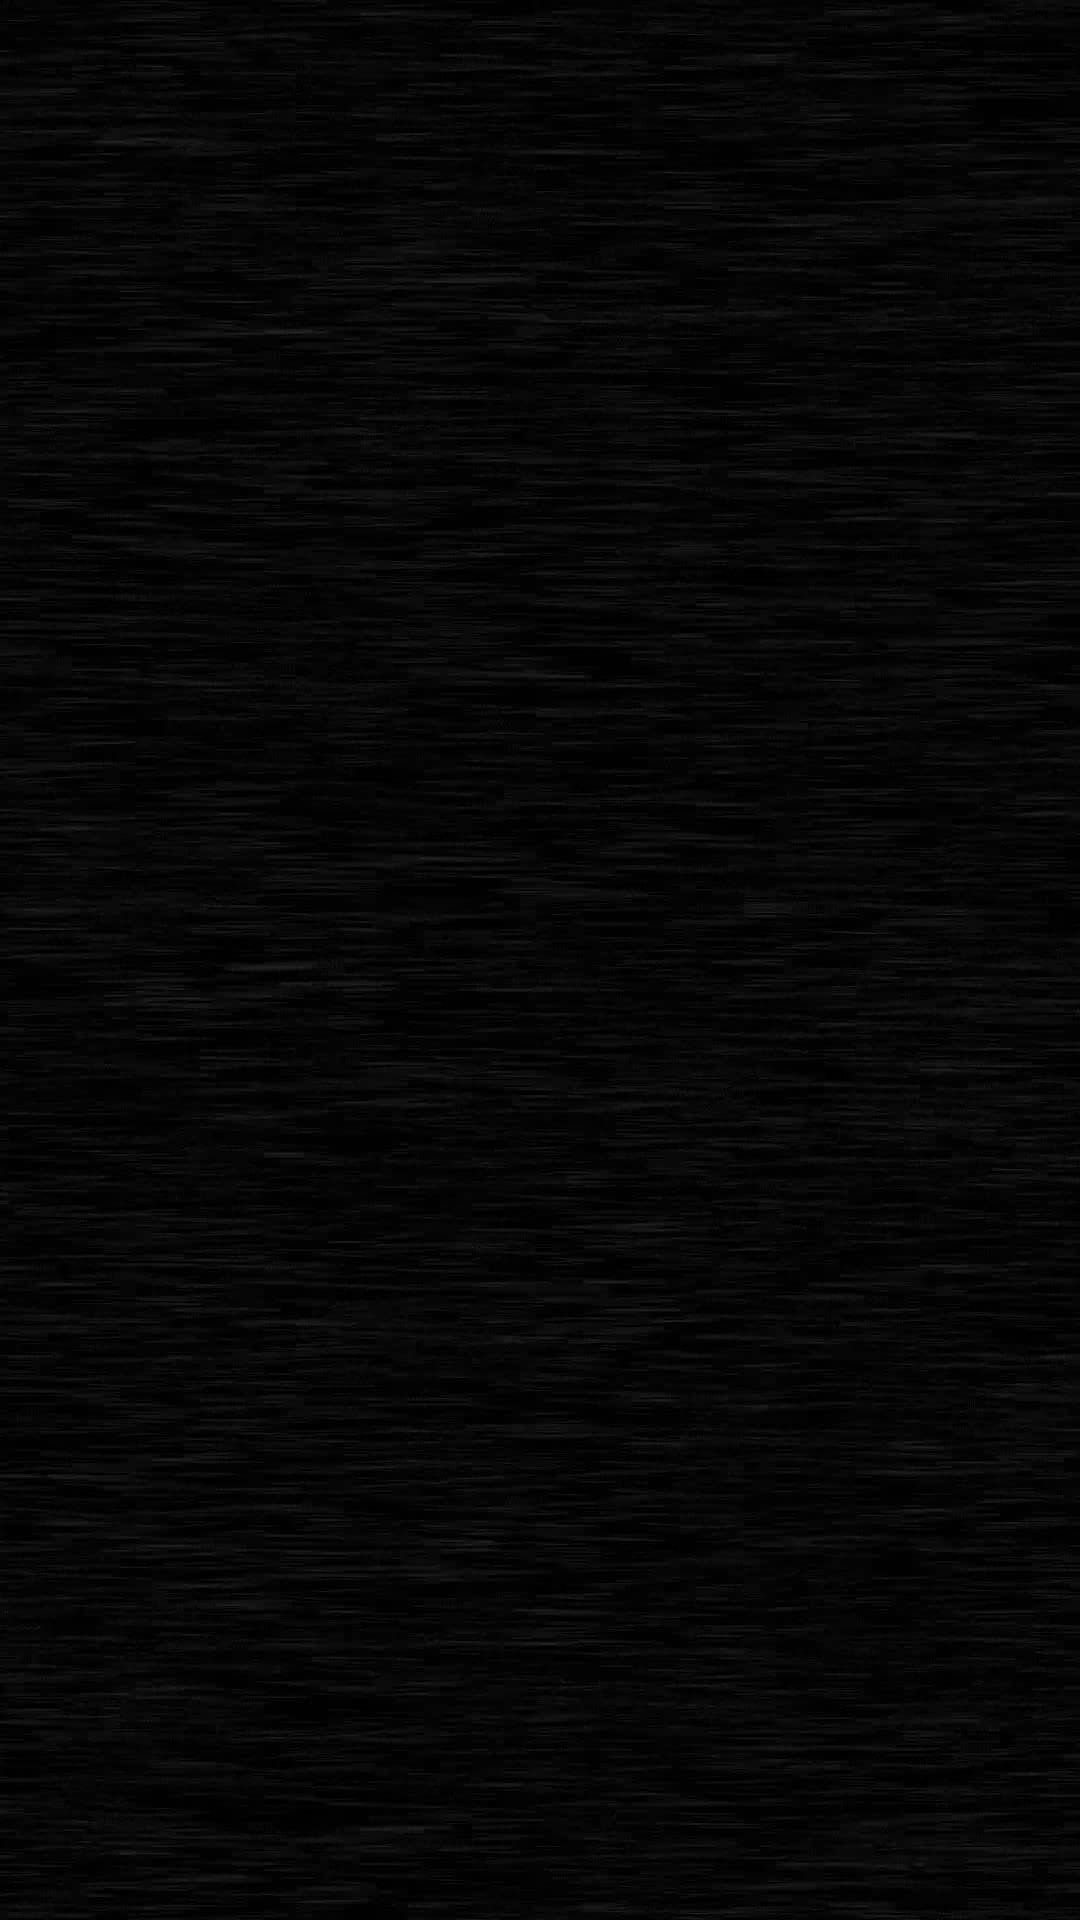 Black Background Better For Eyes Best Iphone Wallpaper Plain Black Background Plain Black Wallpaper Black Background Wallpaper